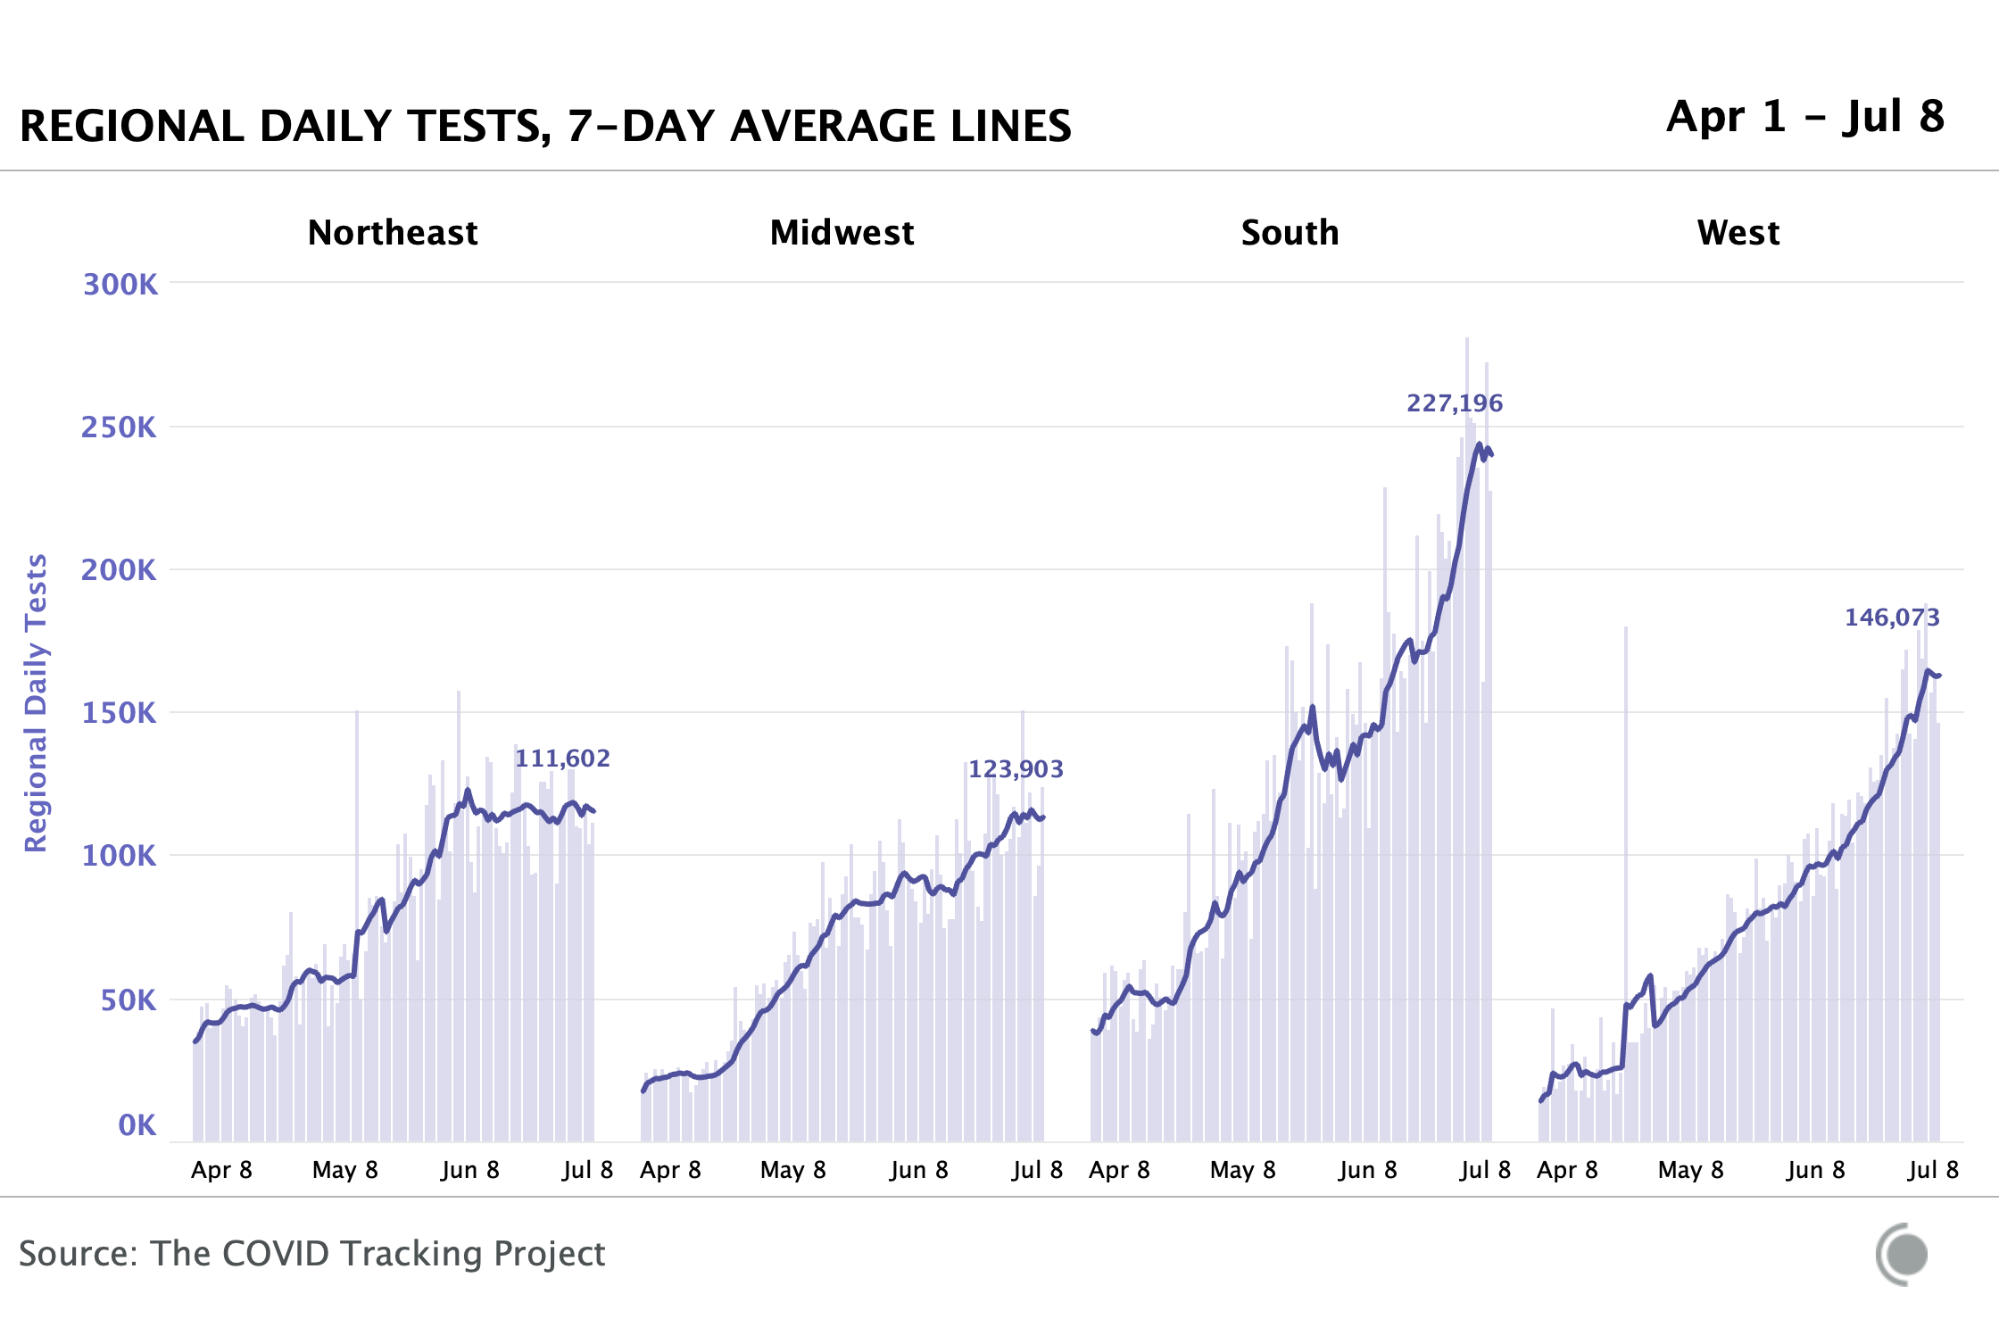 Regional daily tests chart for April 1 to June 8 showing tests rising until recently and then holding steady, first in the Northweast and then in the Midwest, South, and West.